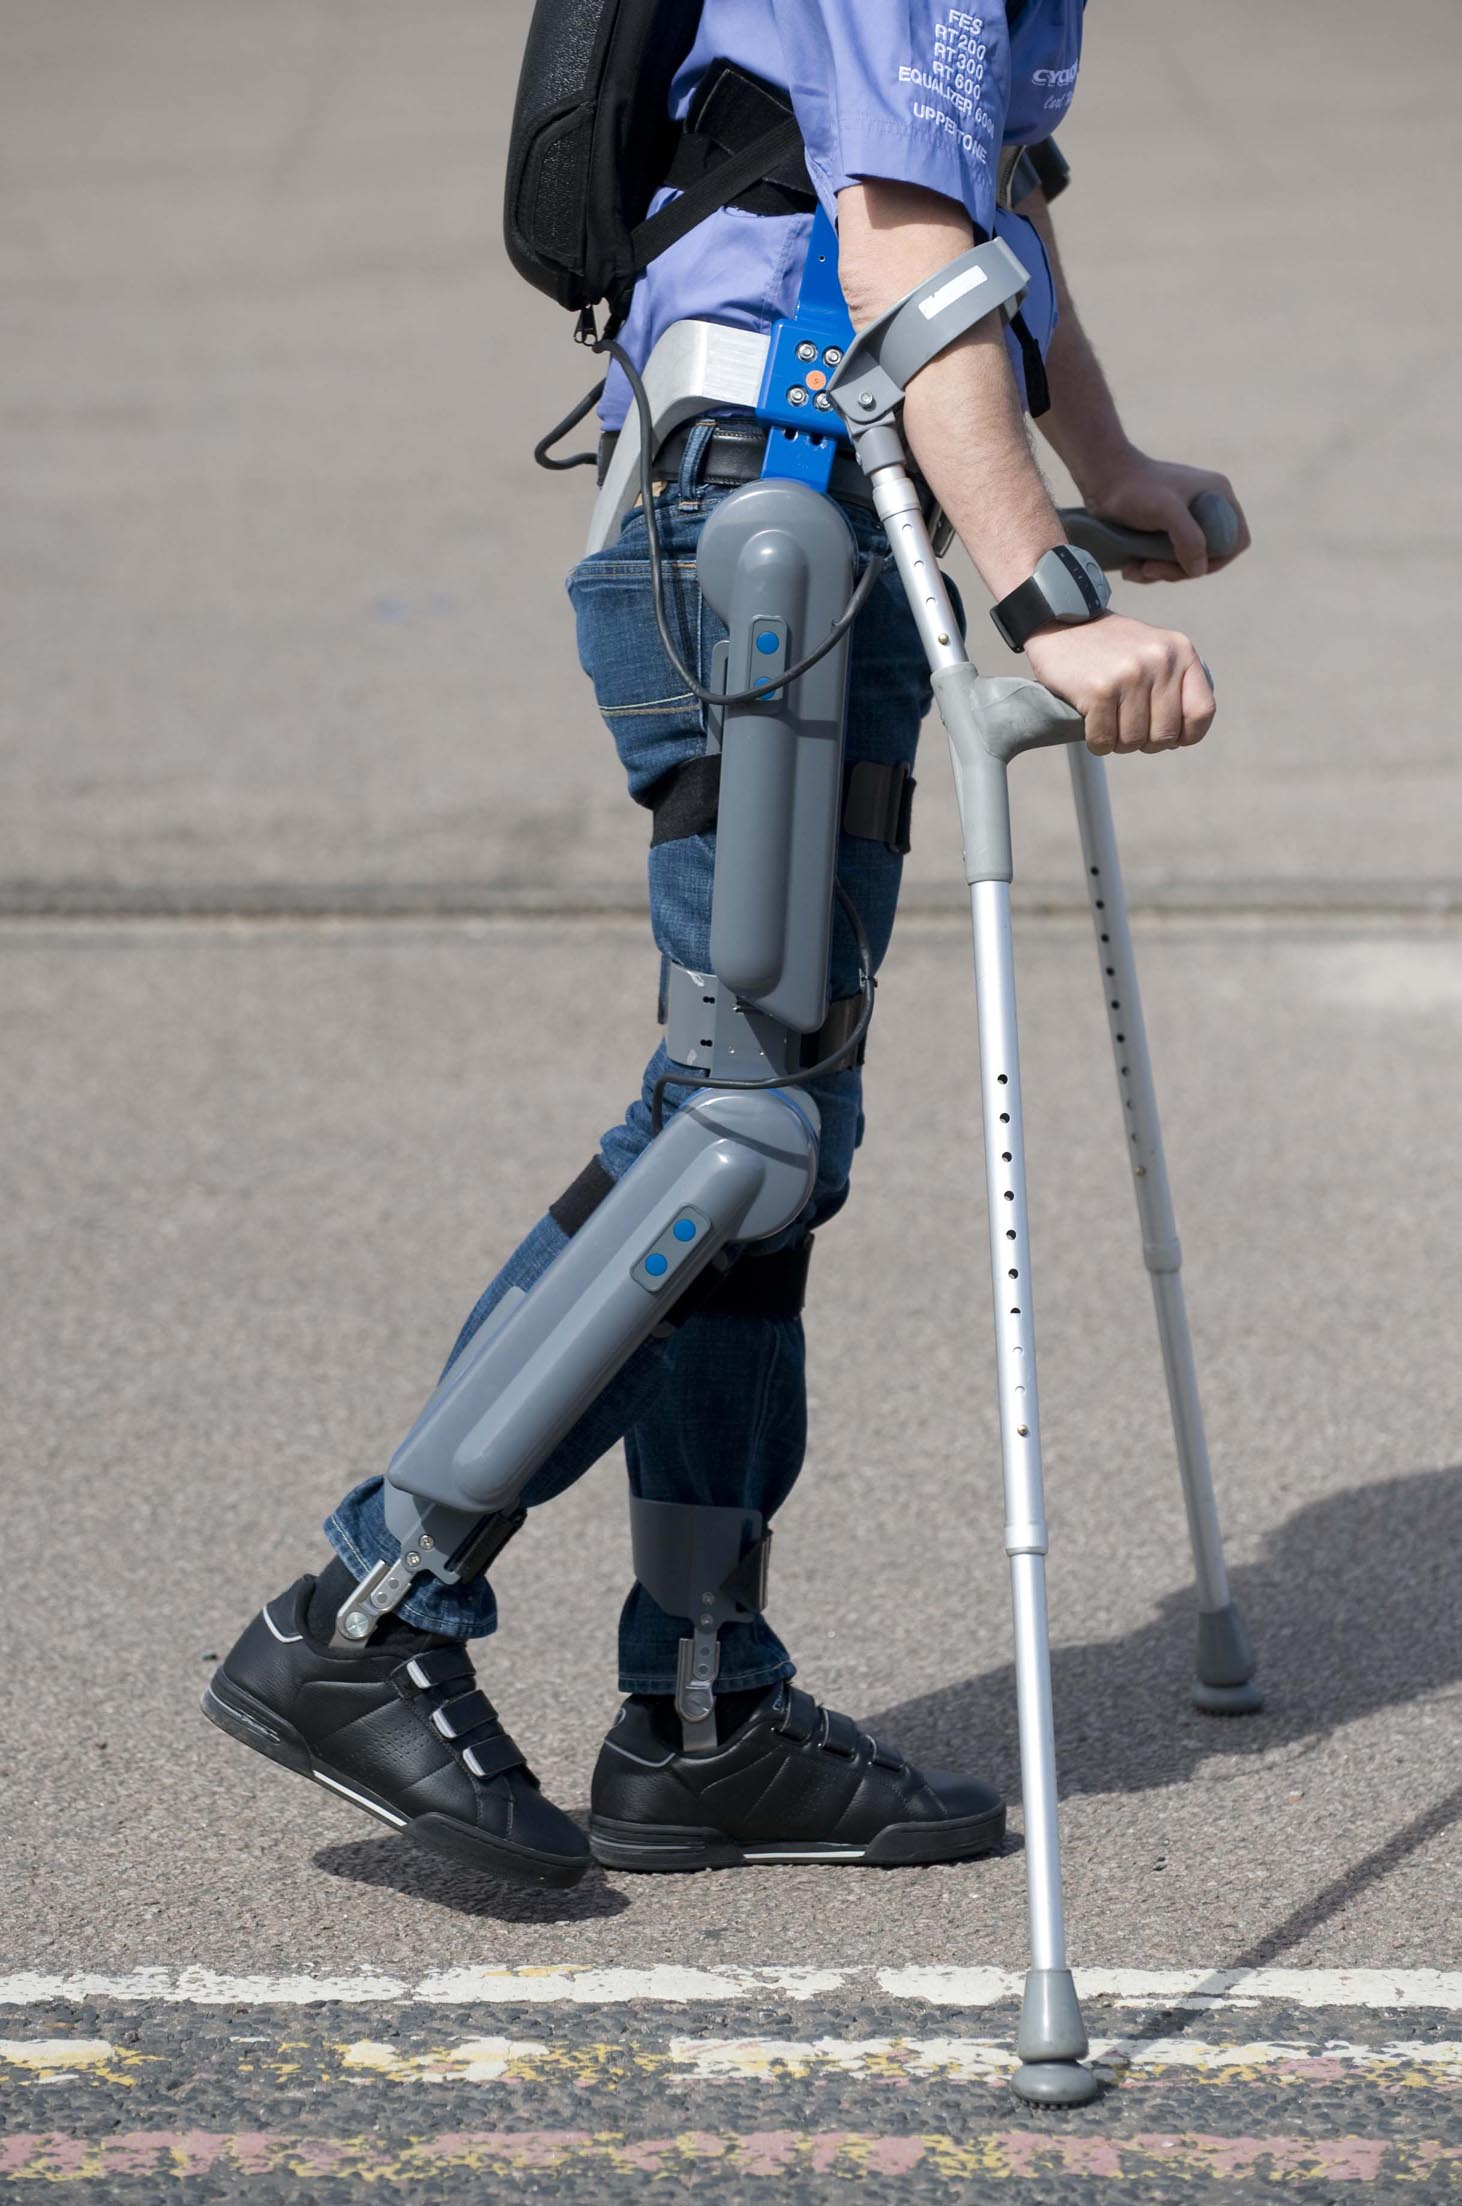 Revolutionary exoskeleton helps soldiers walk again